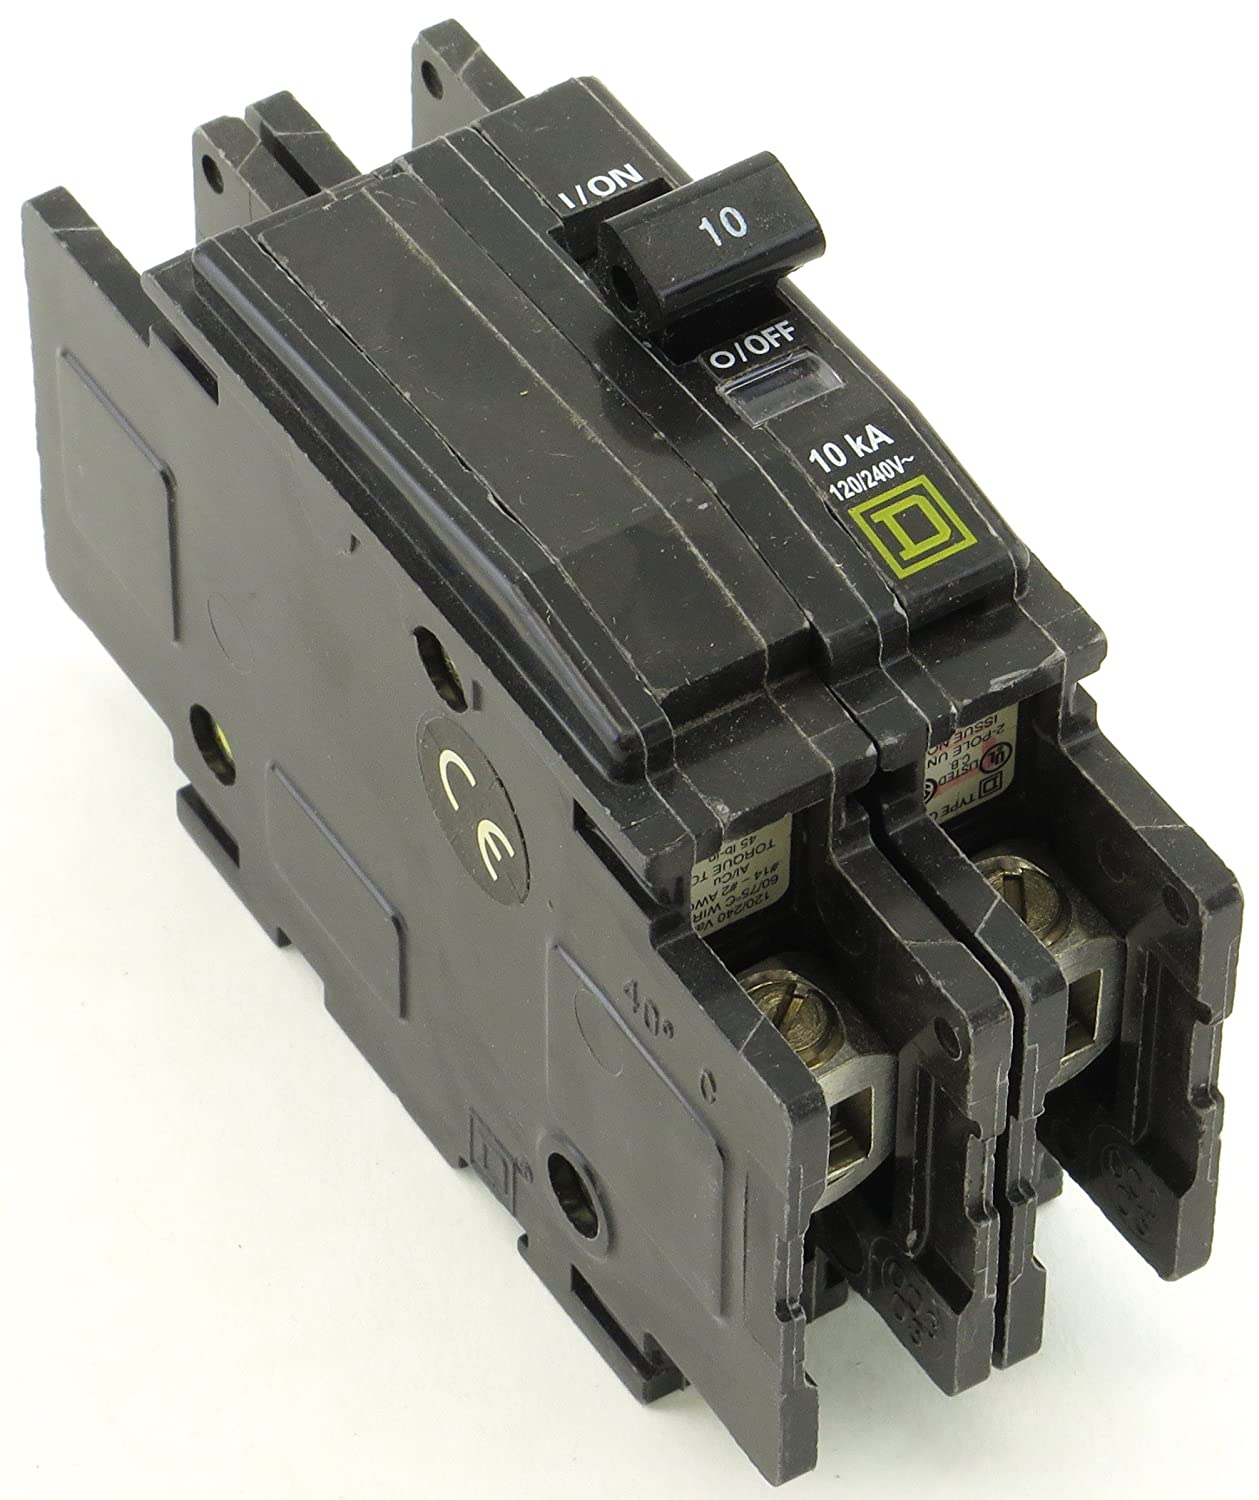 Square D Qou210 Miniature Circuit Electrical Equipment Breaker Types Video Different Of Breakers Ehow